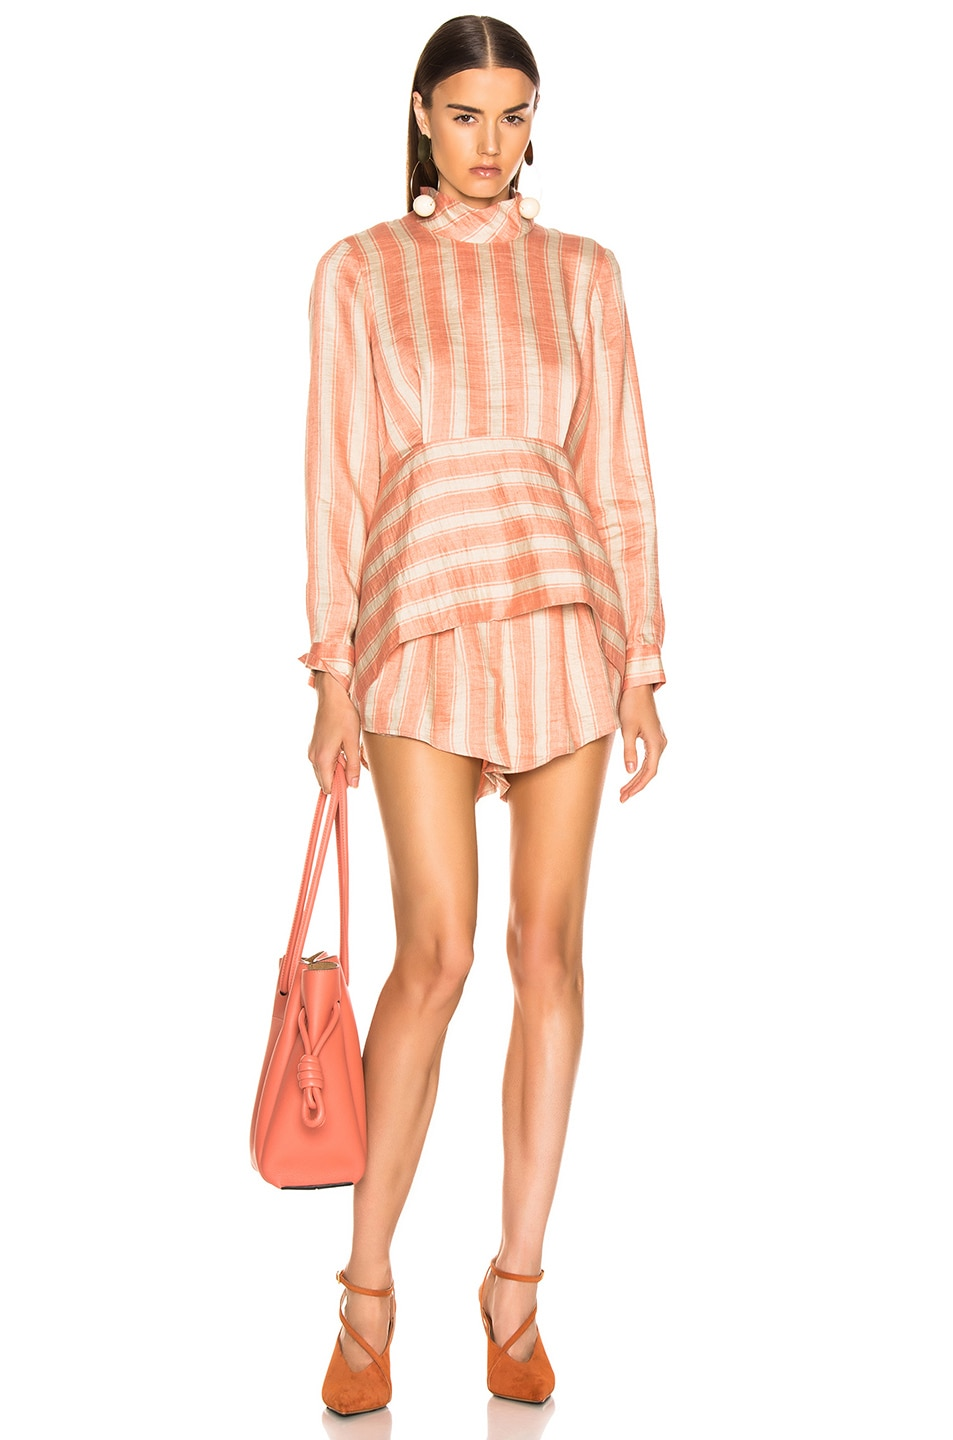 Image 4 of Rachel Comey Cultivate Top in Blush